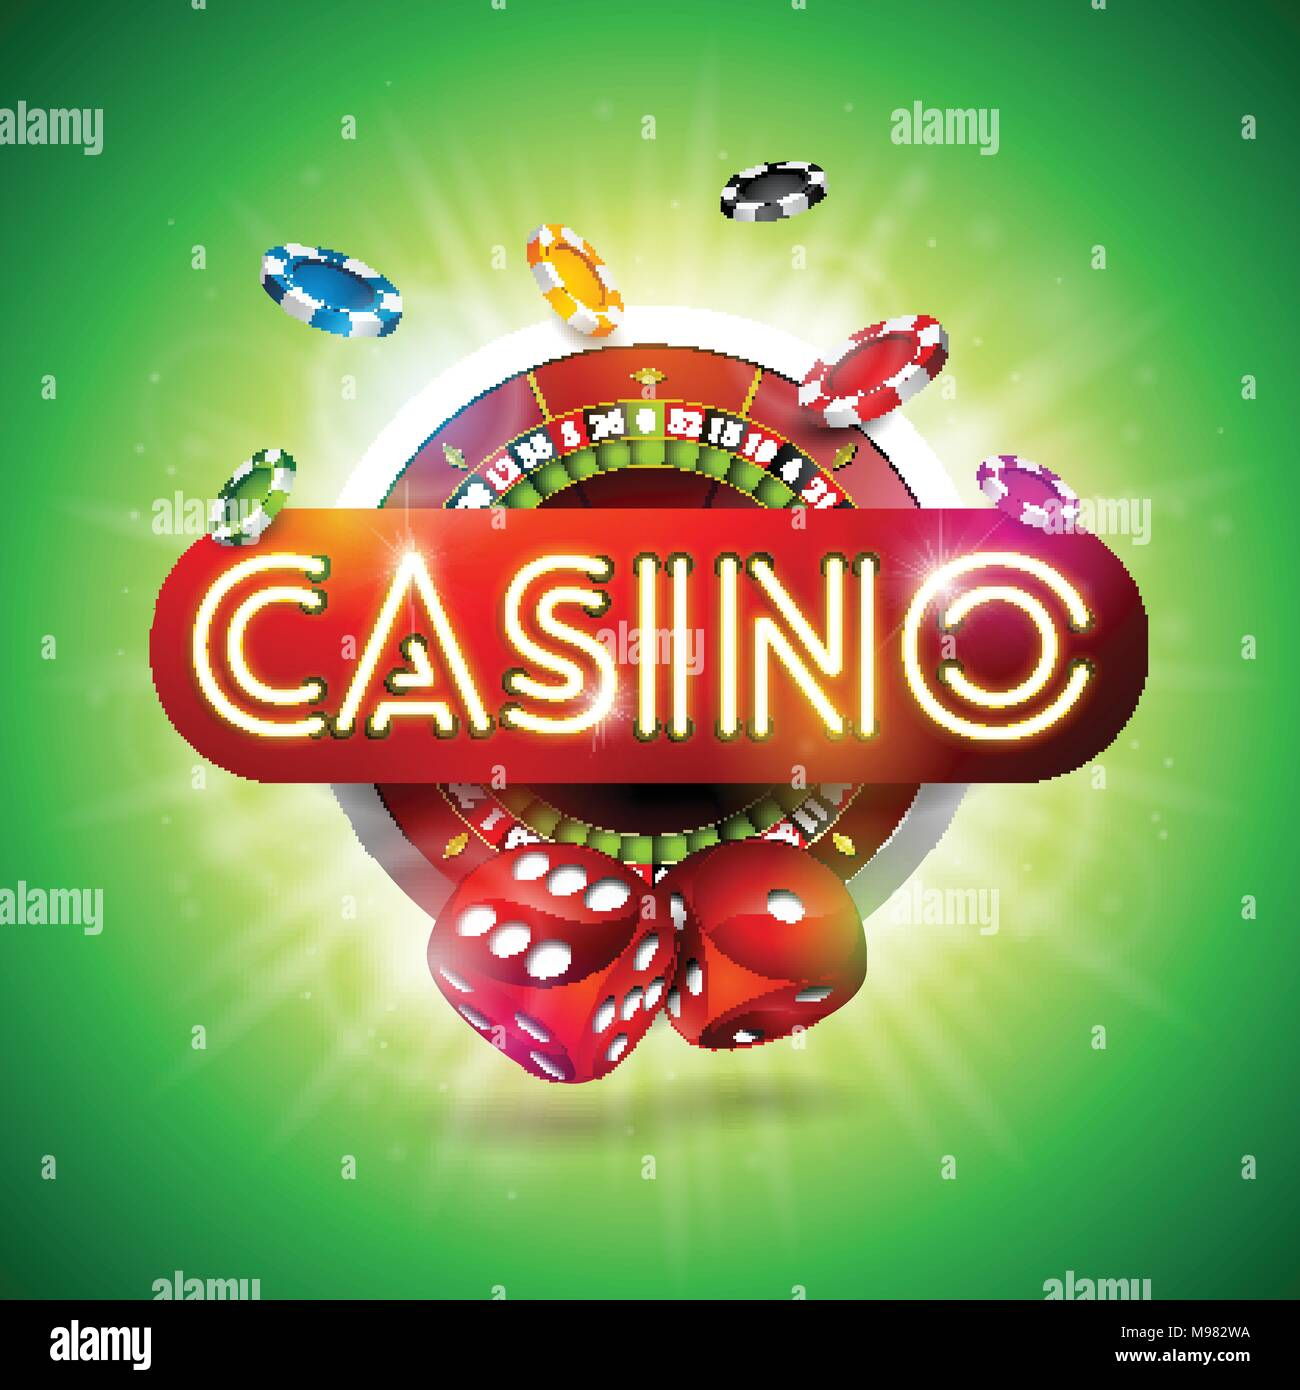 Casino illustration with shiny neon light letter and roulette wheel casino illustration with shiny neon light letter and roulette wheel on green background vector gambling design for invitation or promo banner with dice stopboris Choice Image